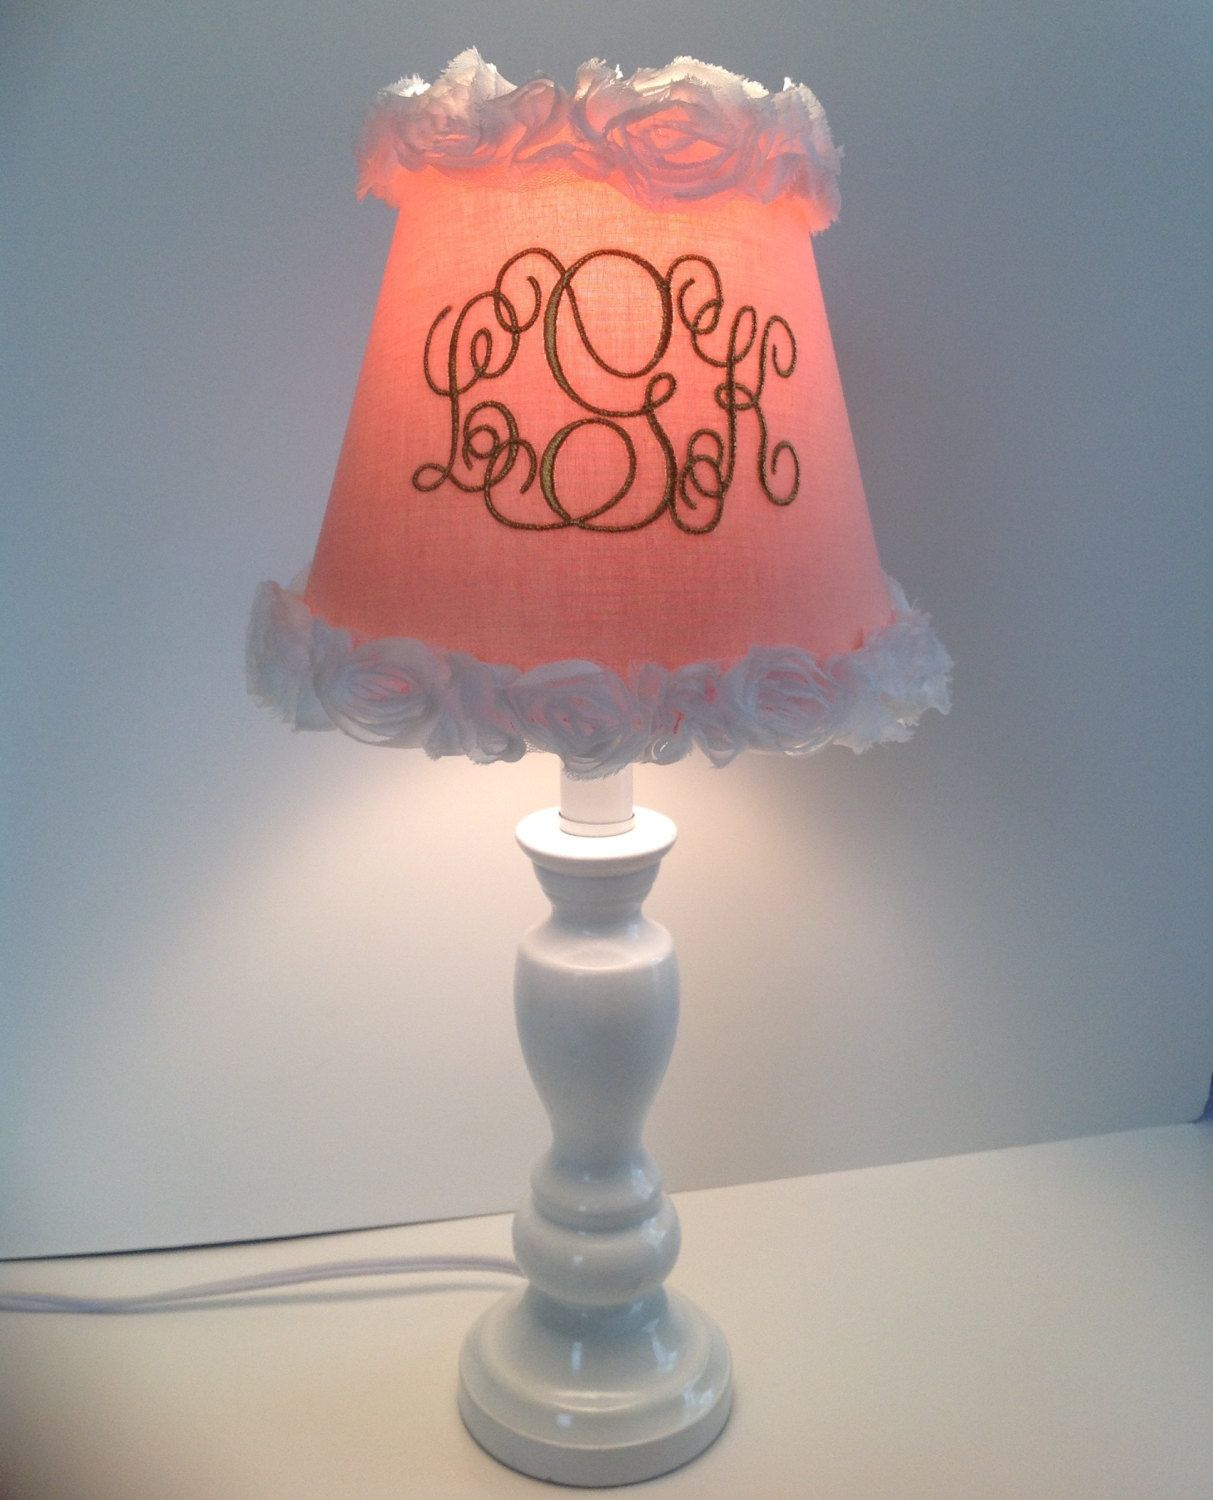 Shabby peach monogrammed lamp shade your choice for monogram color shabby peach monogrammed lamp shade your choice for monogram color mozeypictures Images